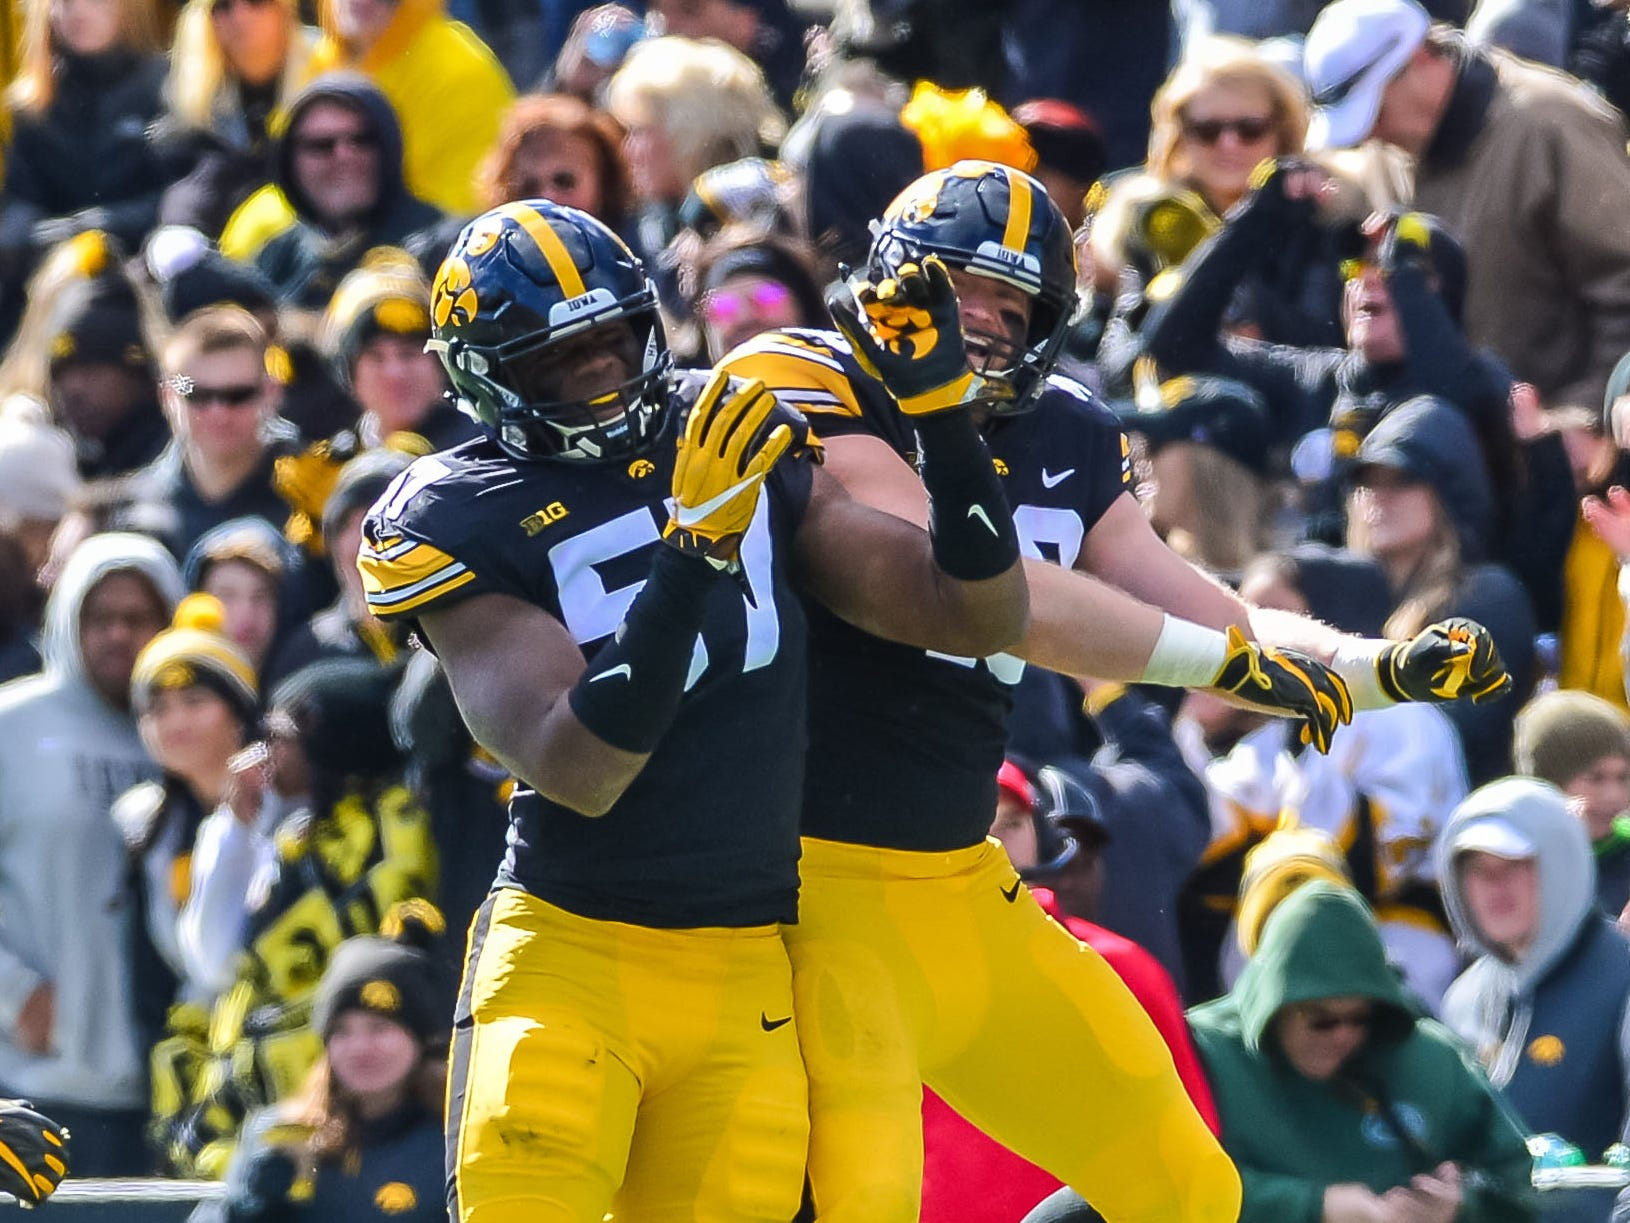 Iowa Hawkeyes defensive end Chauncey Golston (57) and defensive end Parker Hesse (40) celebrate during the fourth quarter against the Maryland Terrapins at Kinnick Stadium.